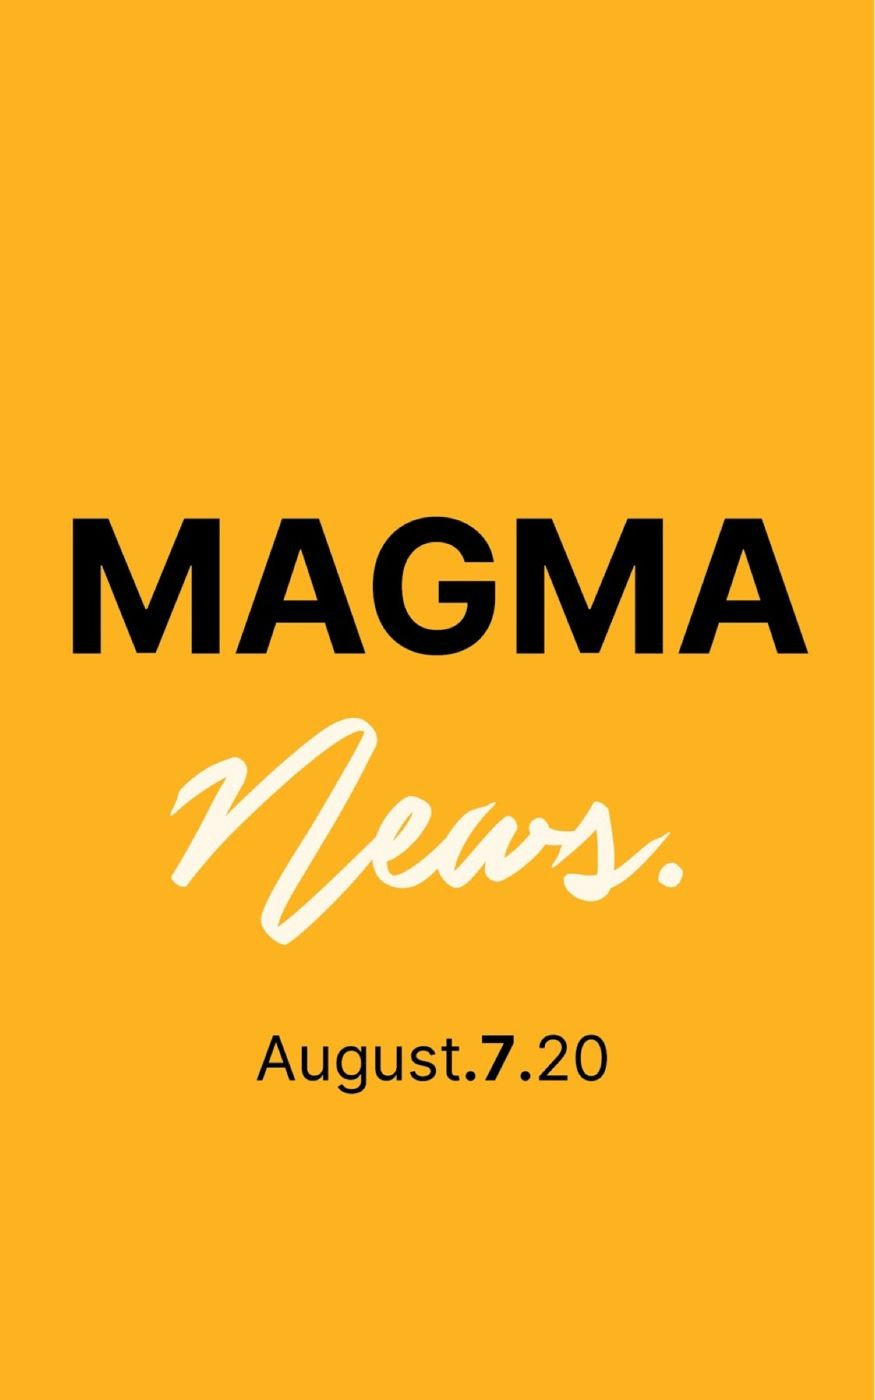 MAGMA NEWS | August 7, 2020